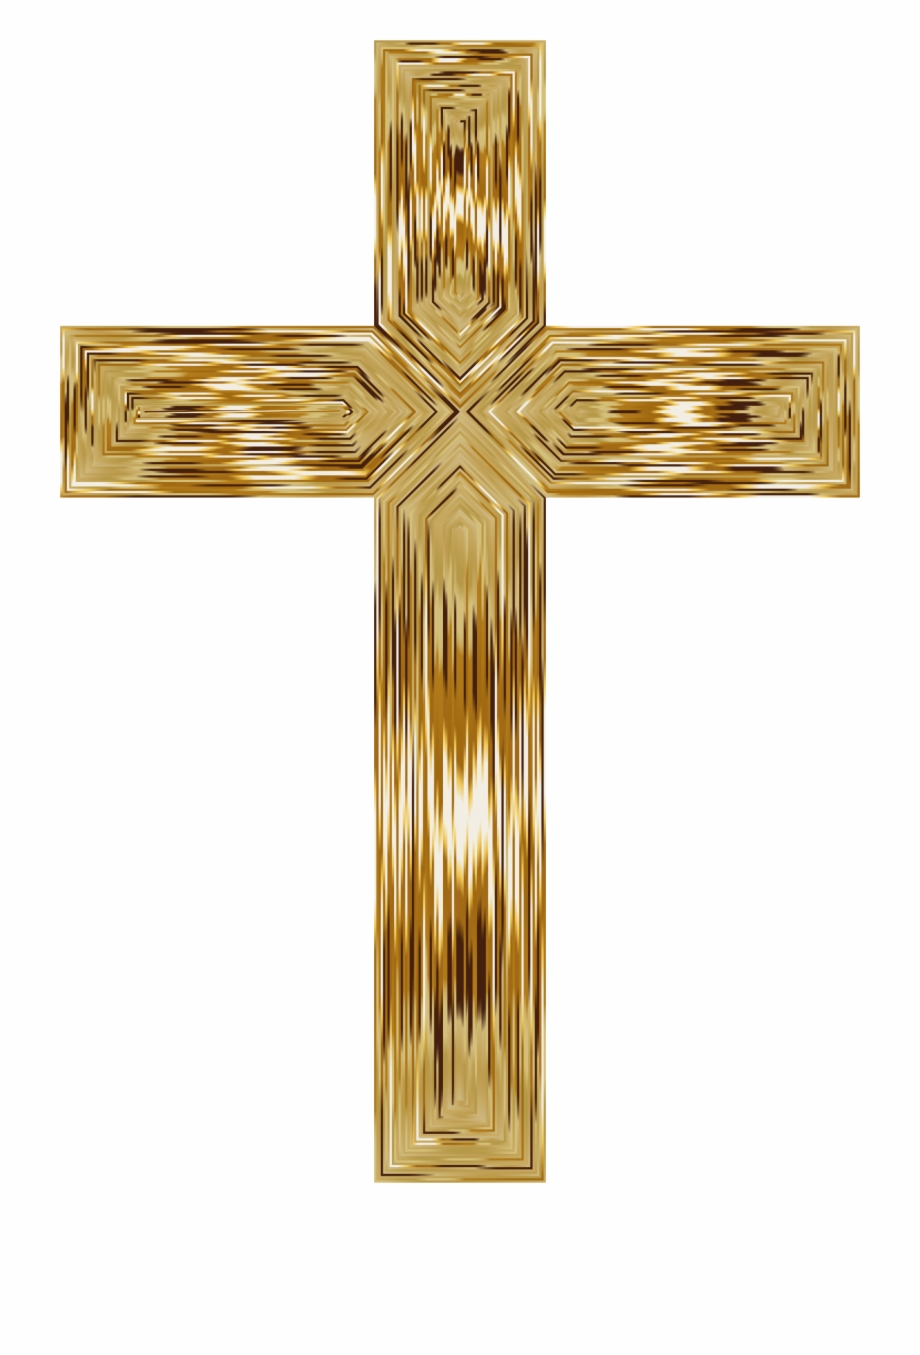 Gold Cross Transparent.